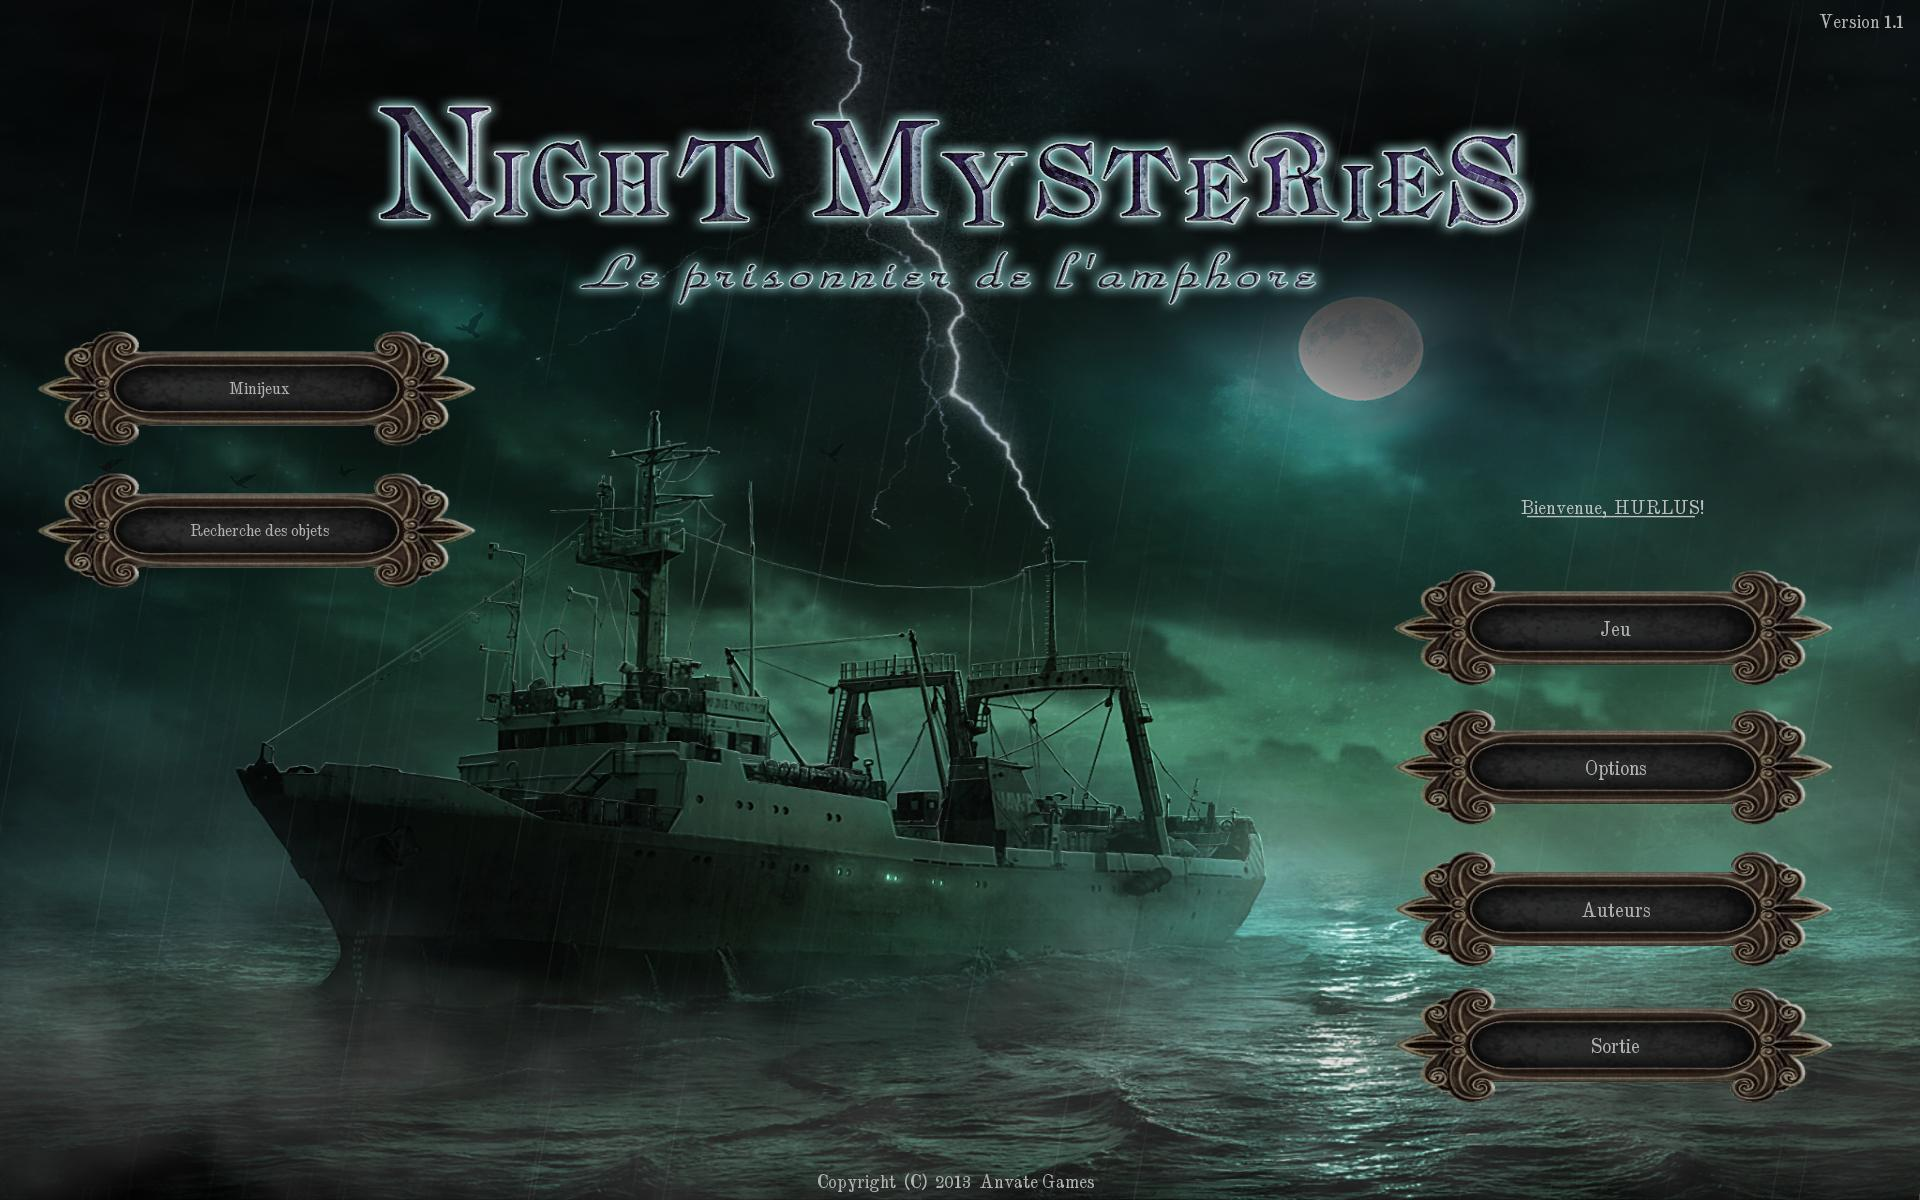 Night Mysteries: Le Prisonnier de l'Amphore [PC] [MULTI]